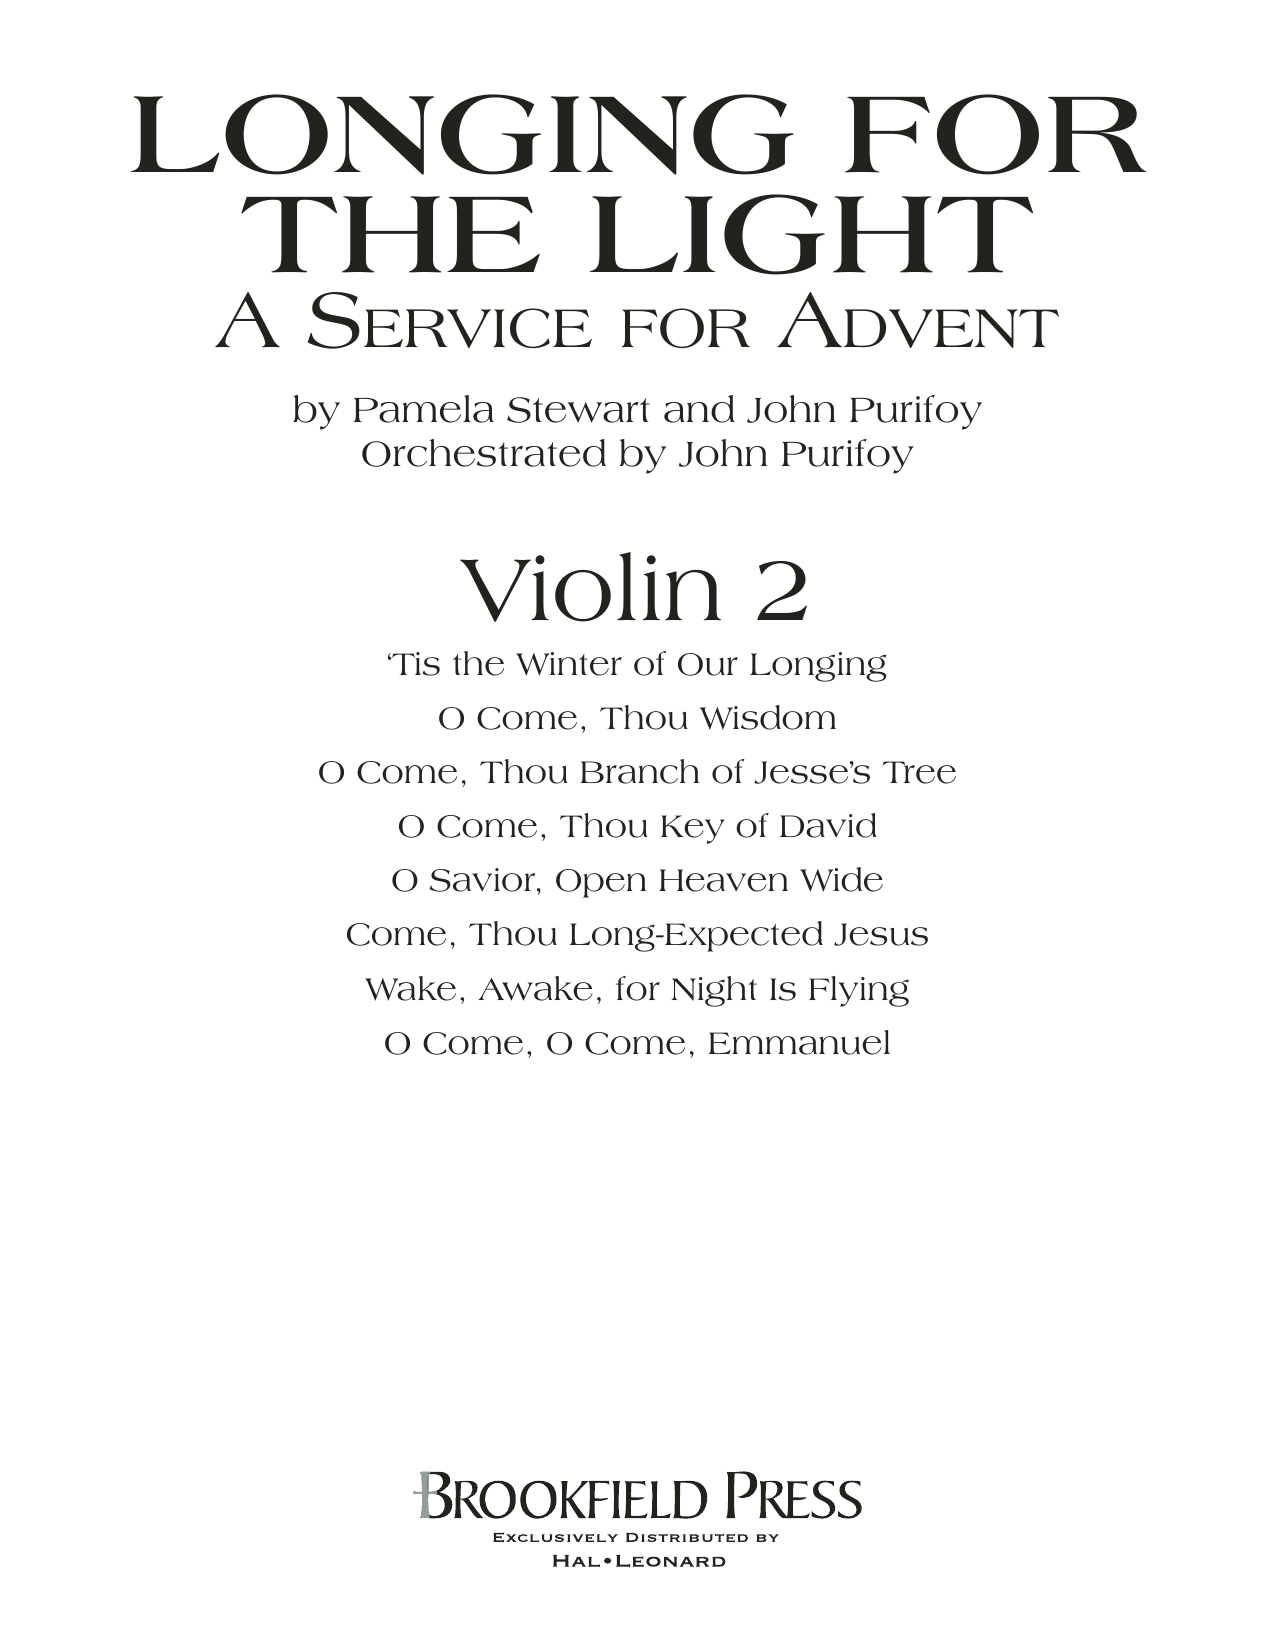 Longing For The Light (A Service For Advent) - Violin 2 Sheet Music